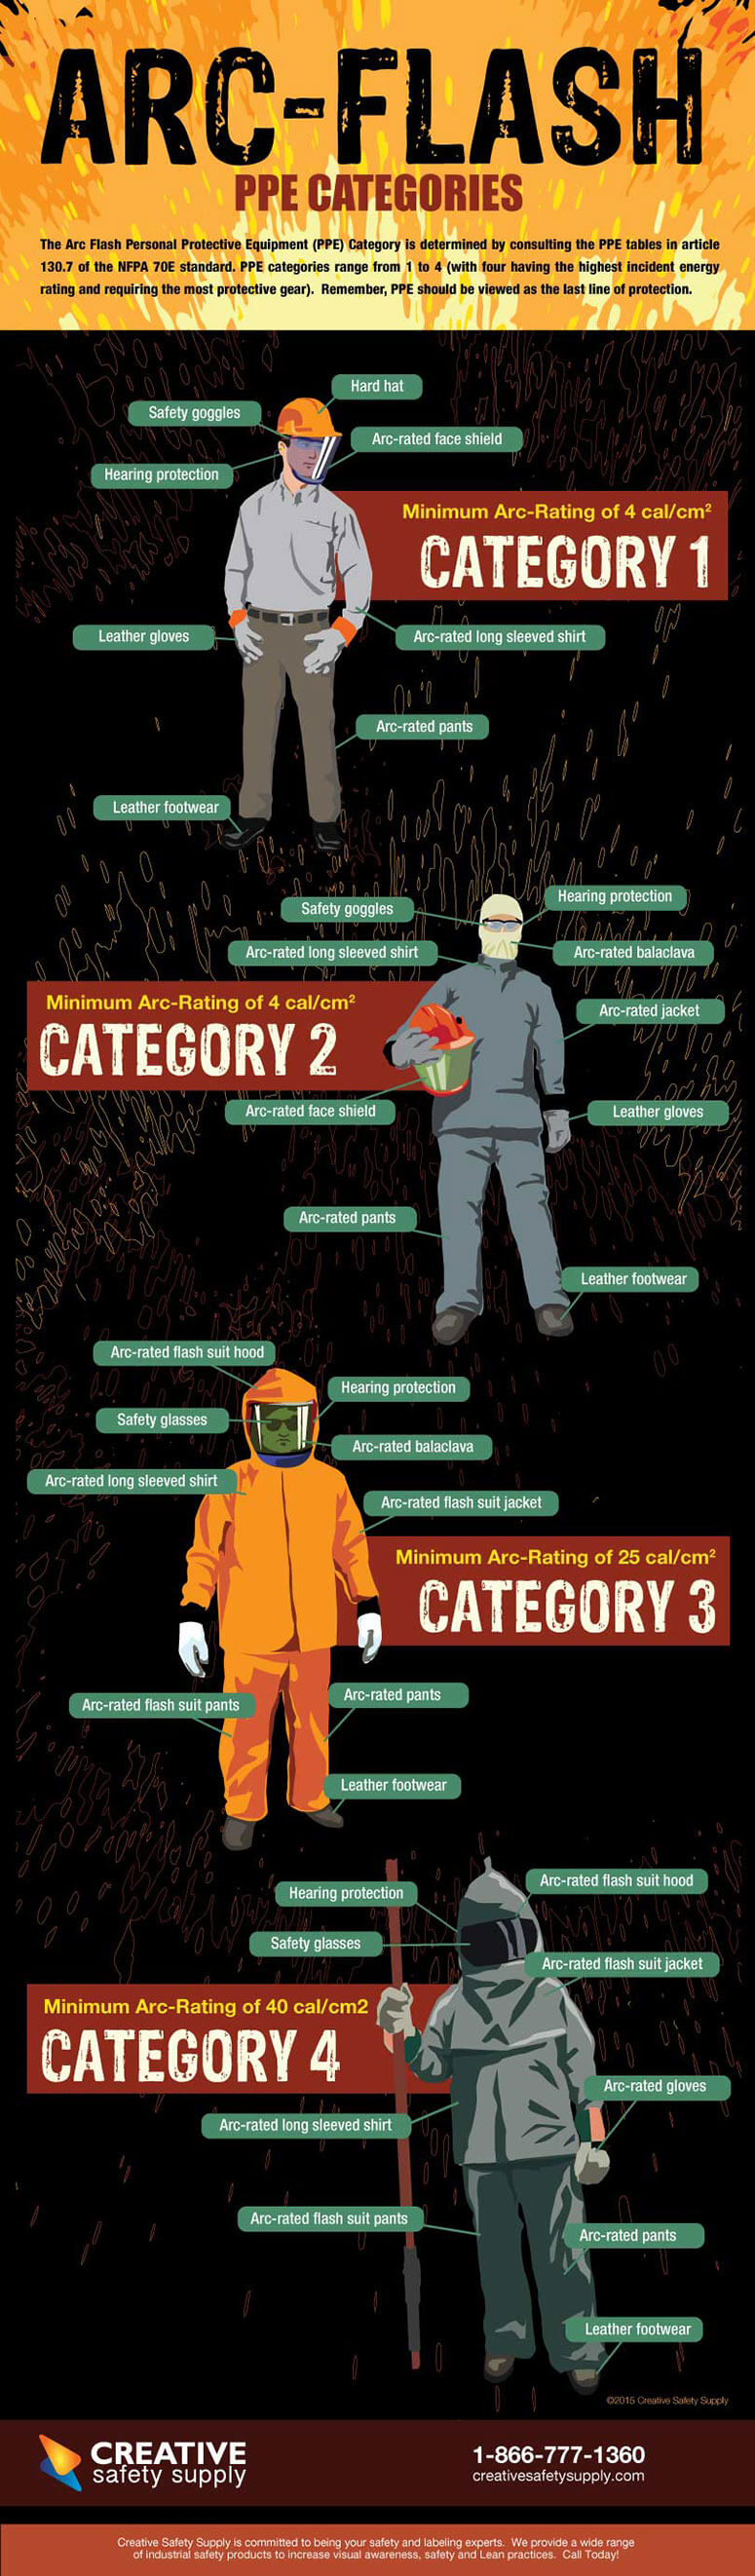 Arc Flash PPE Categories infographic